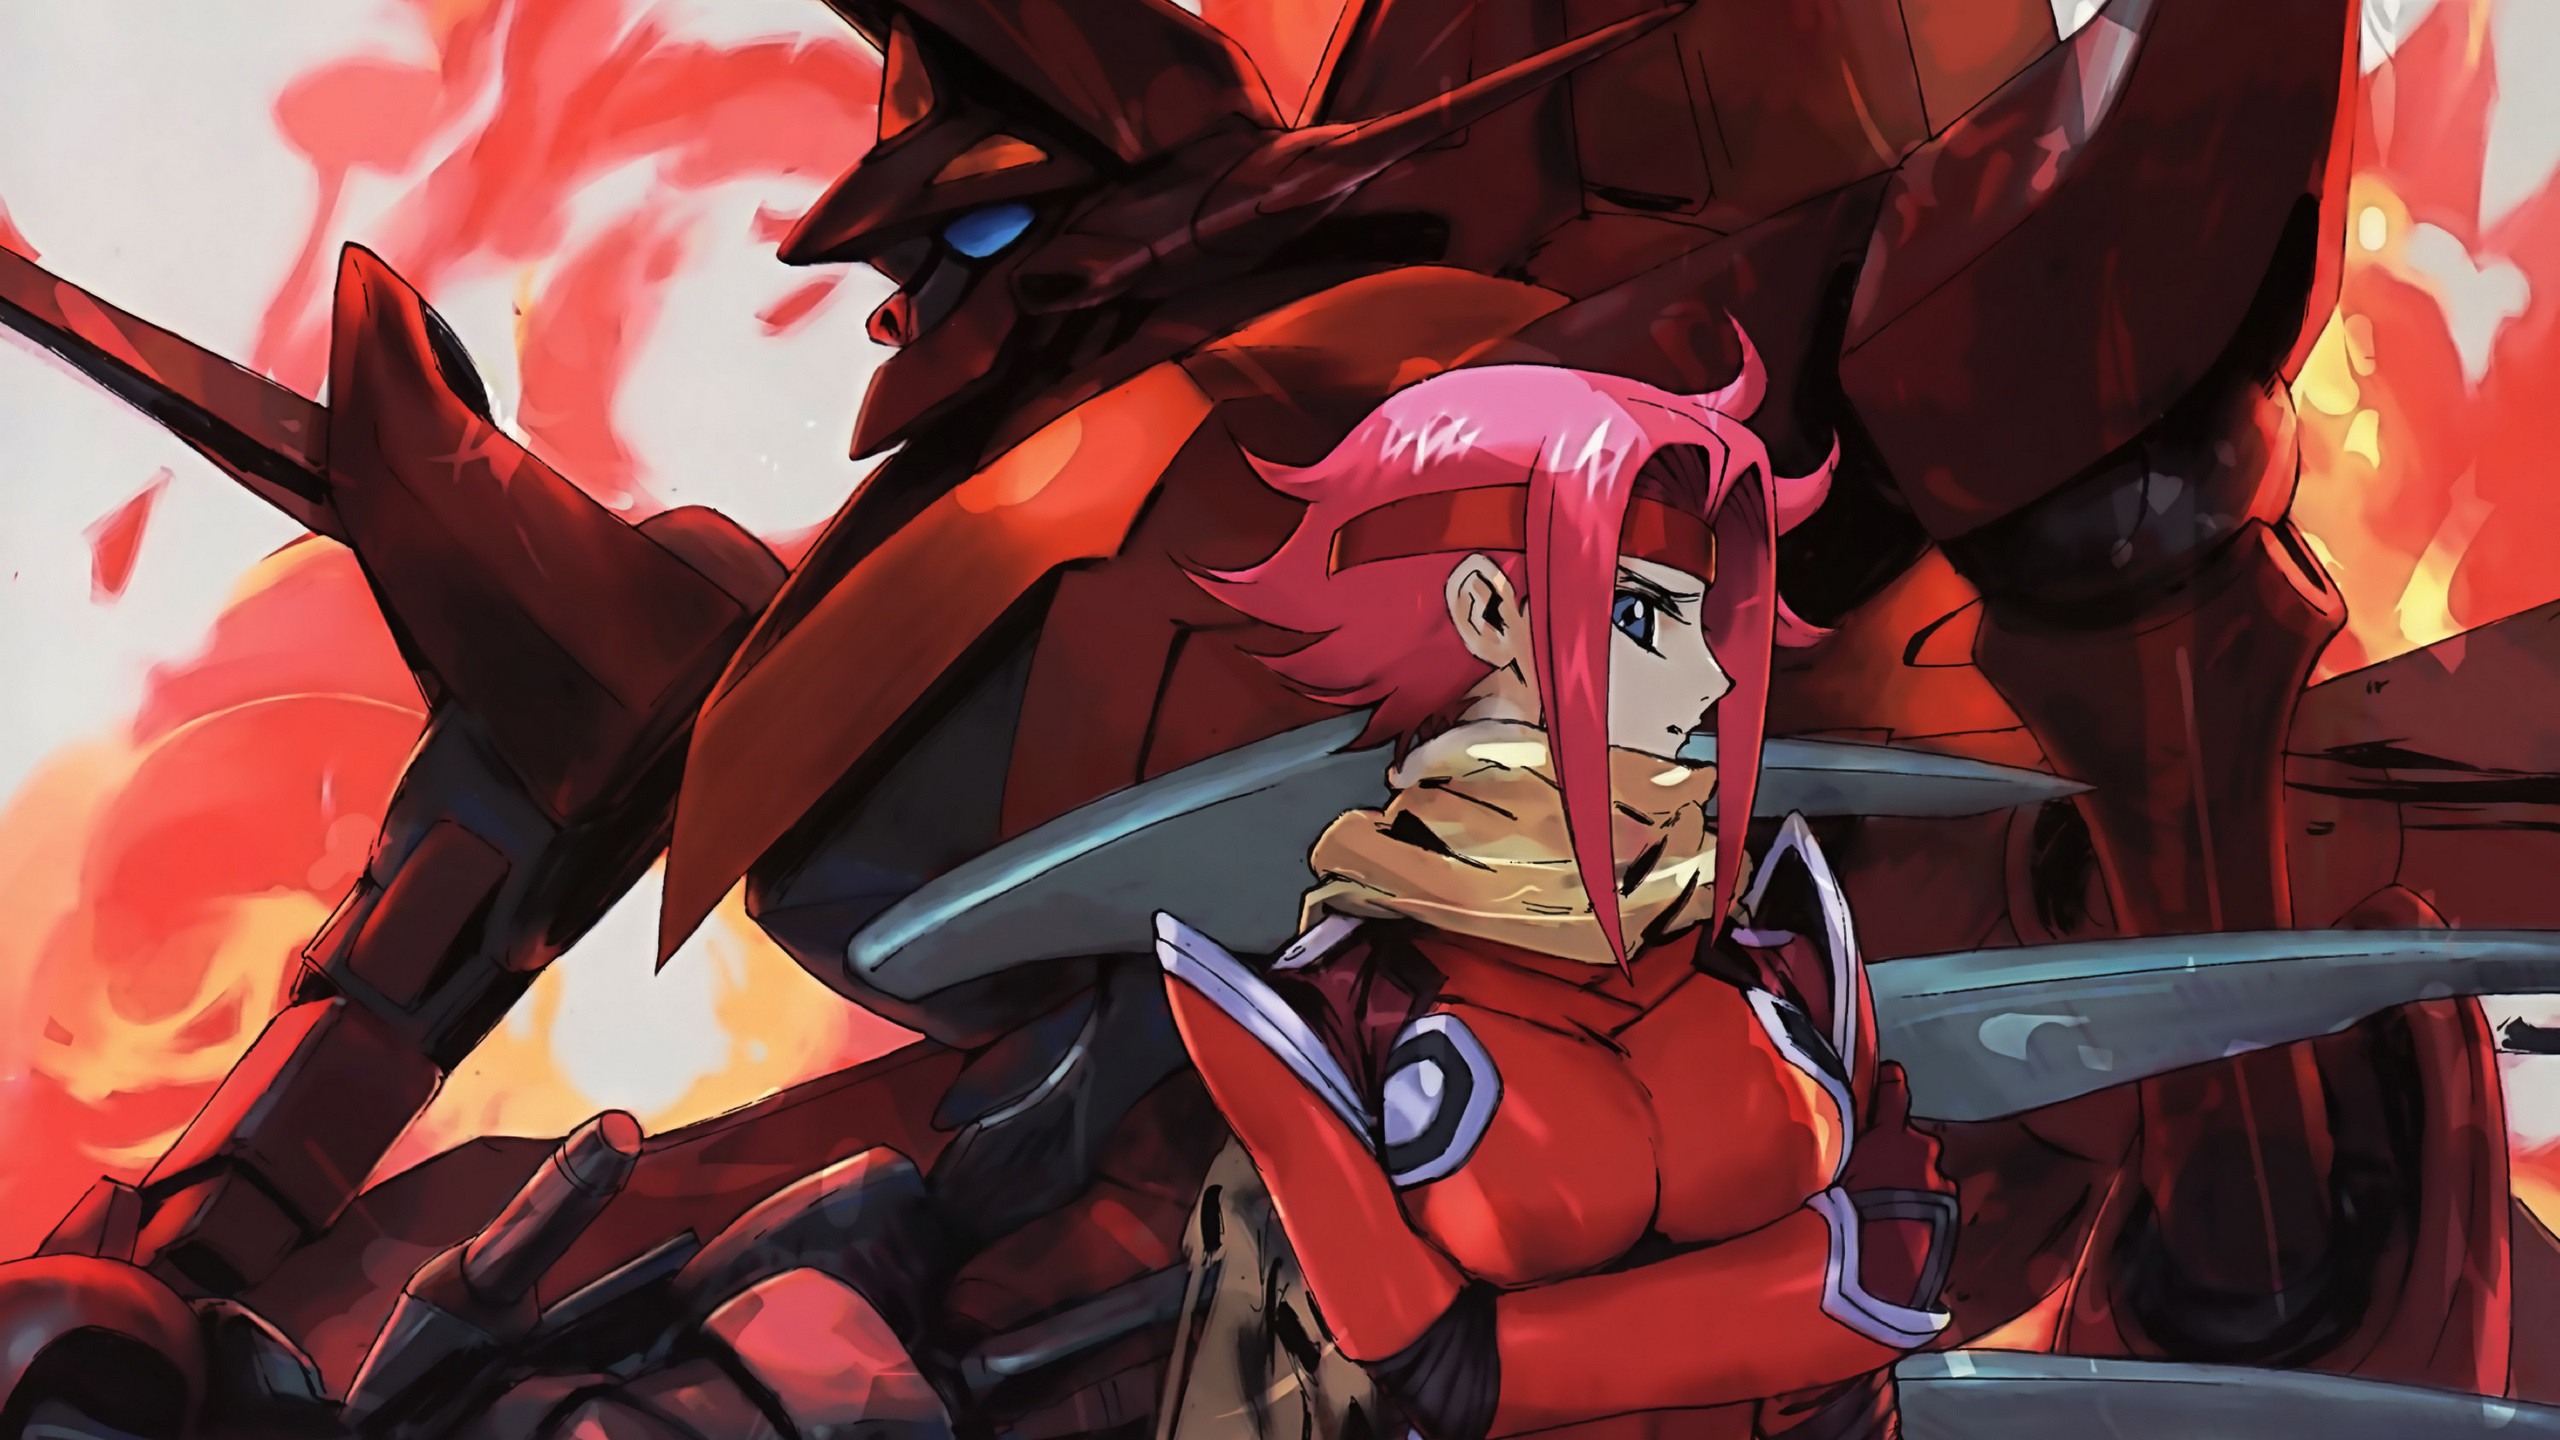 Badass anime wallpaper 65 images - Anime backgrounds hd 1920x1080 ...